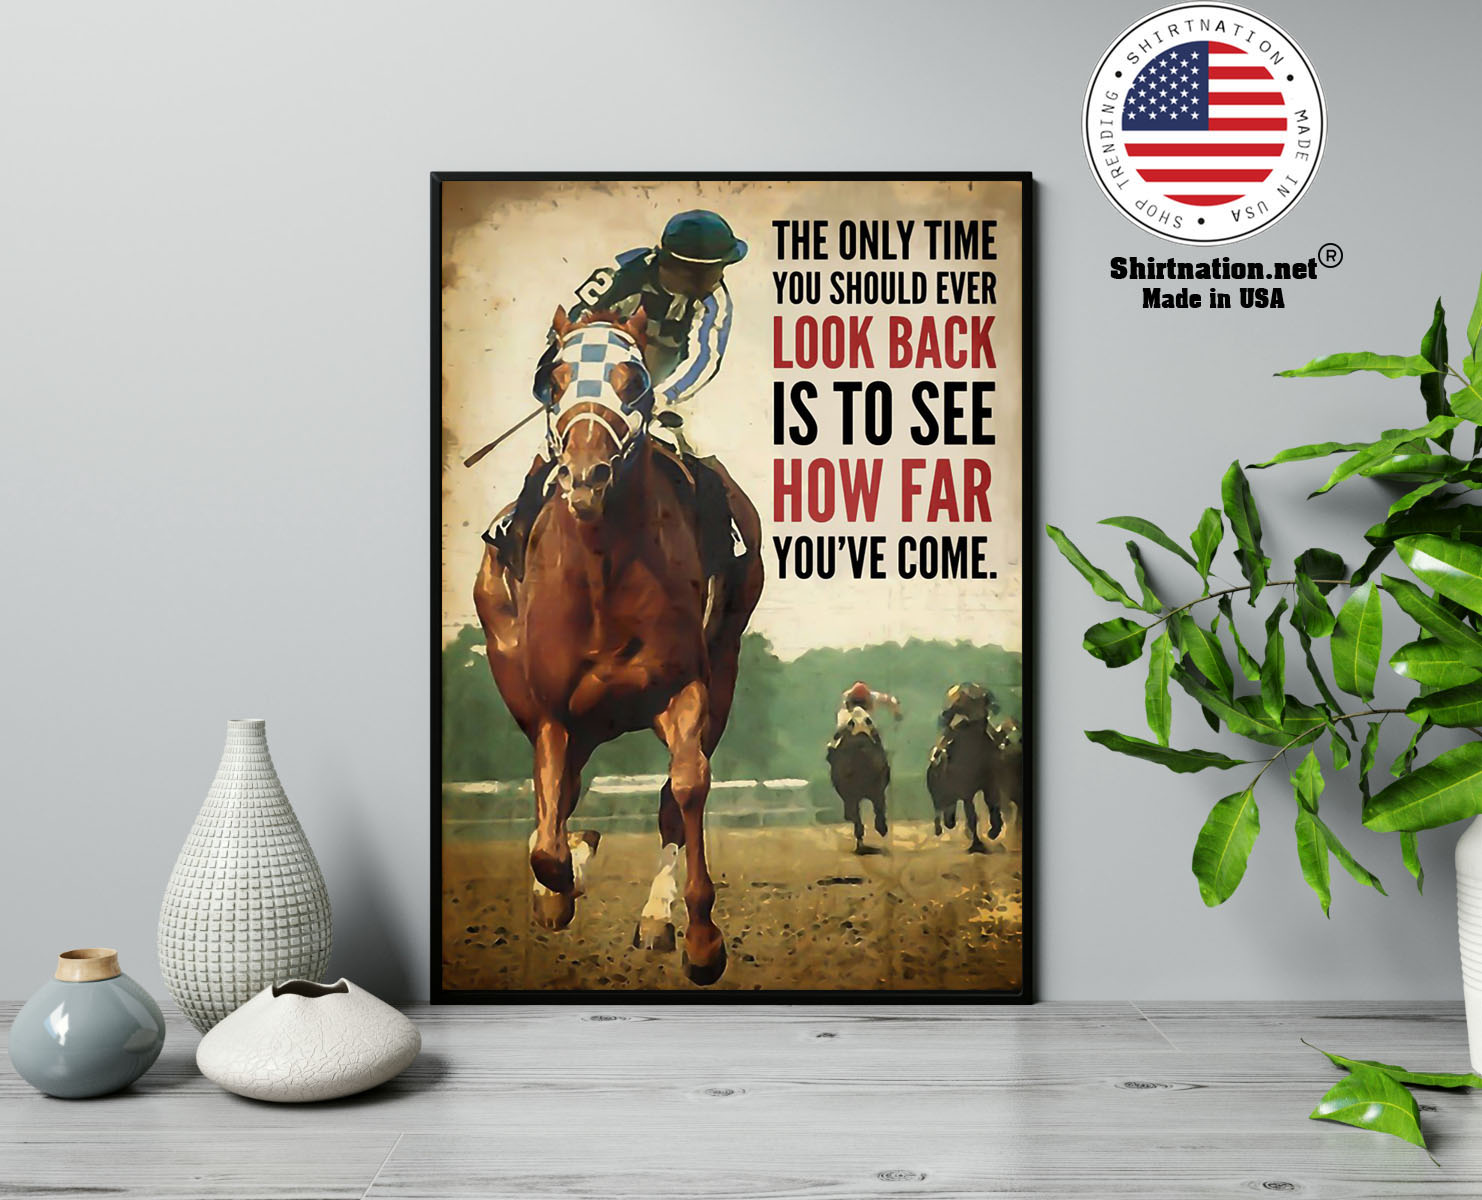 The only time you should ever look back is see how far youve come poster 13